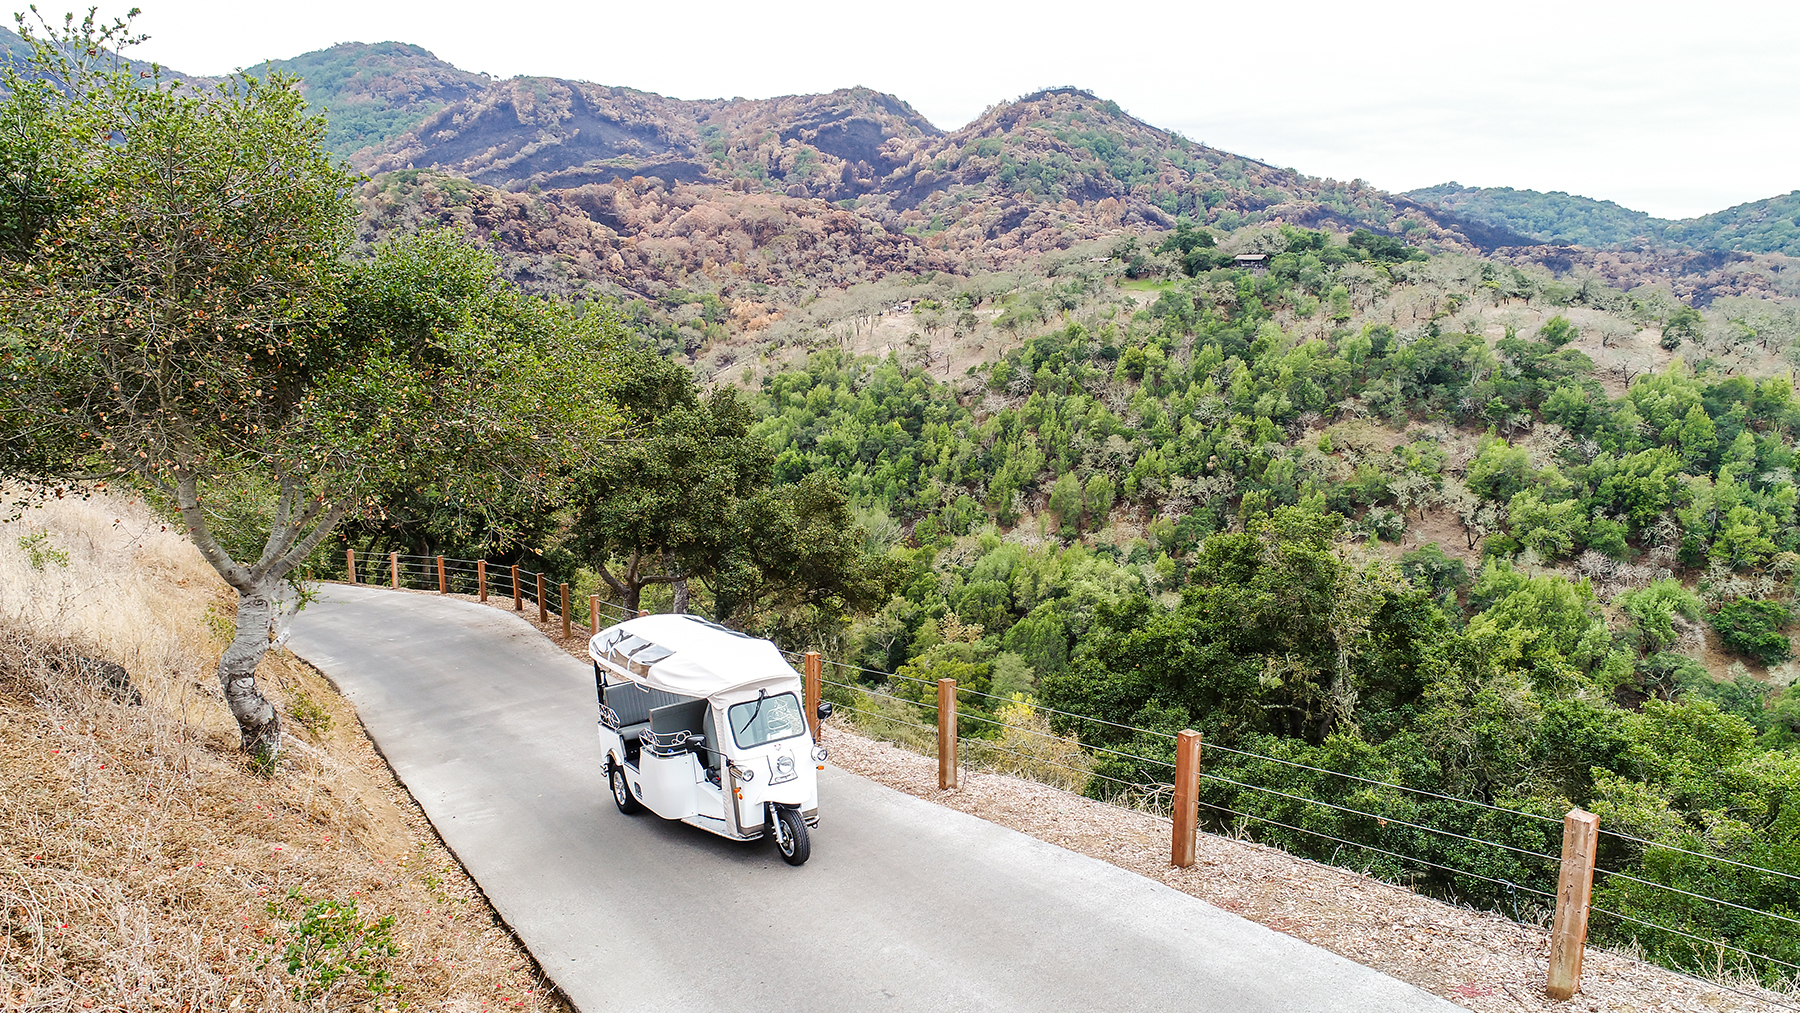 Tuk-tuk tour of Napa Valley via Laces and Limos